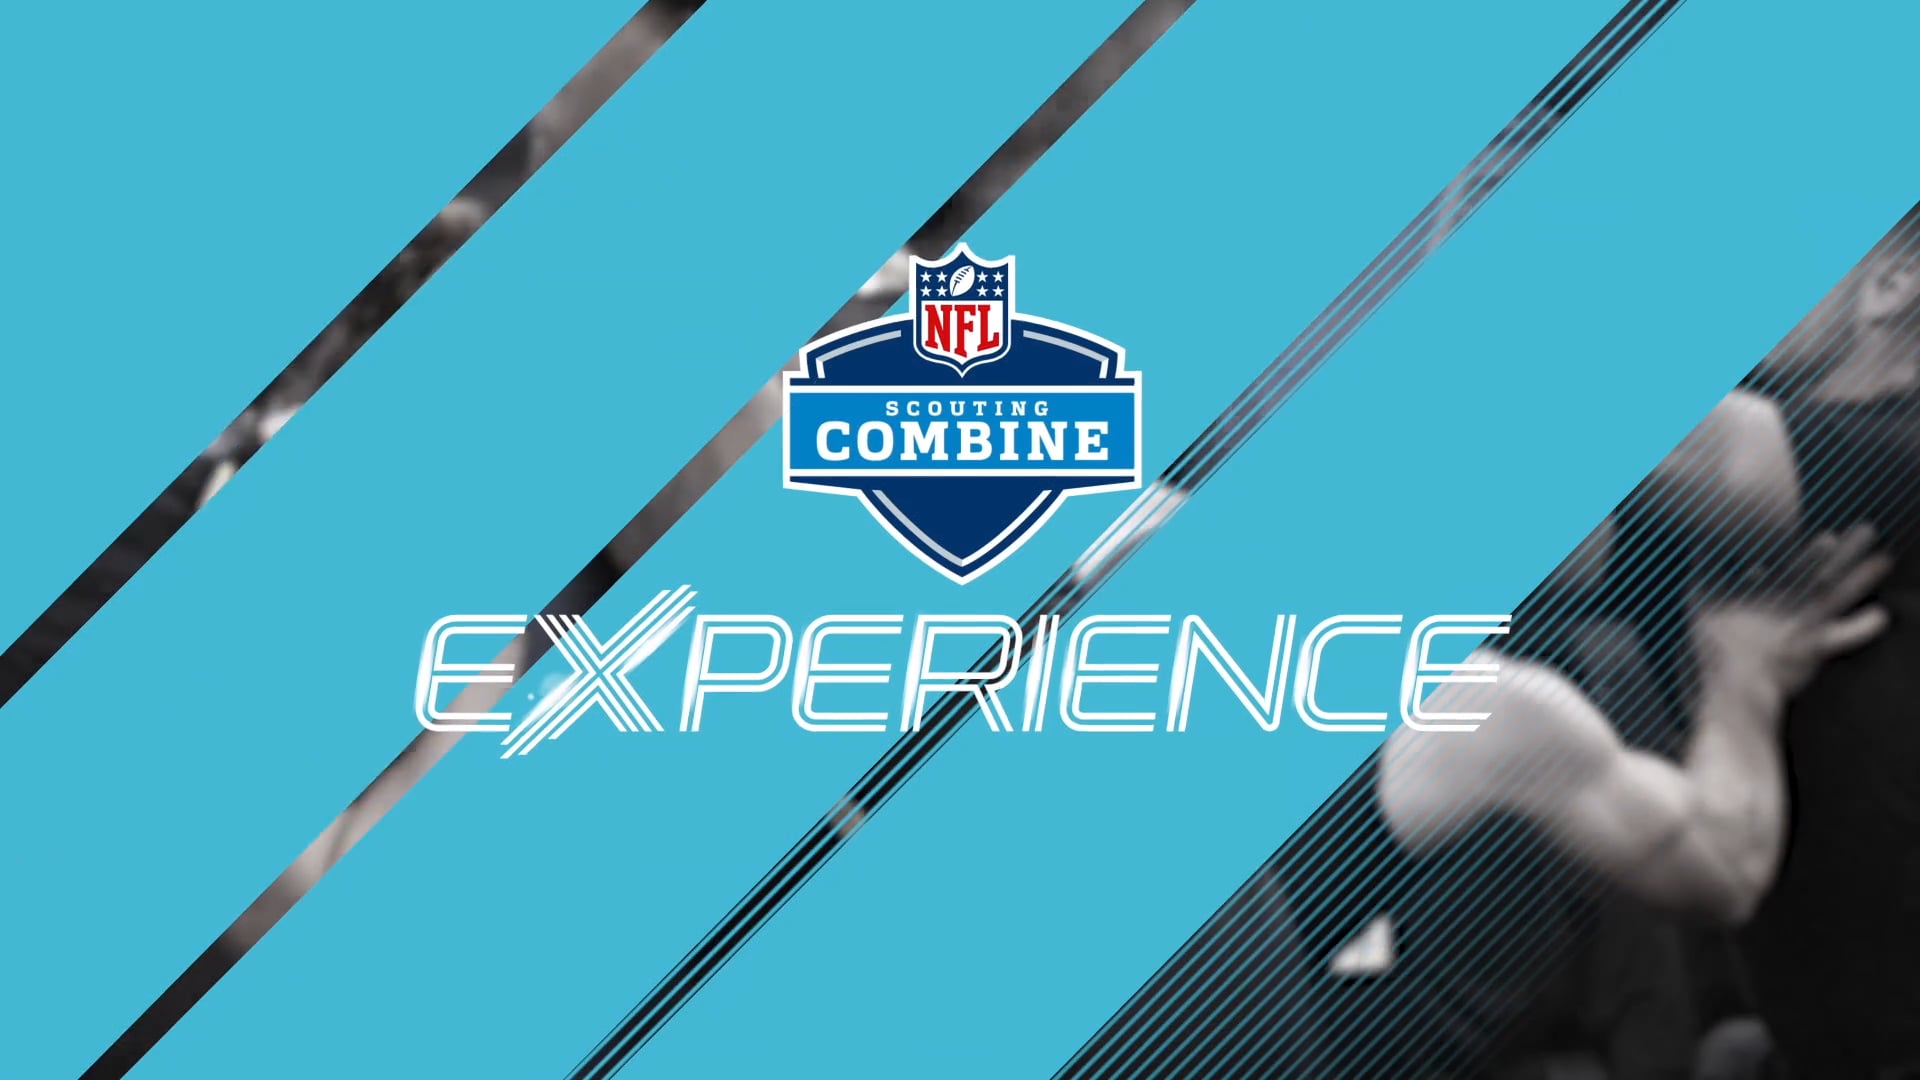 NFL Network Combine Experience